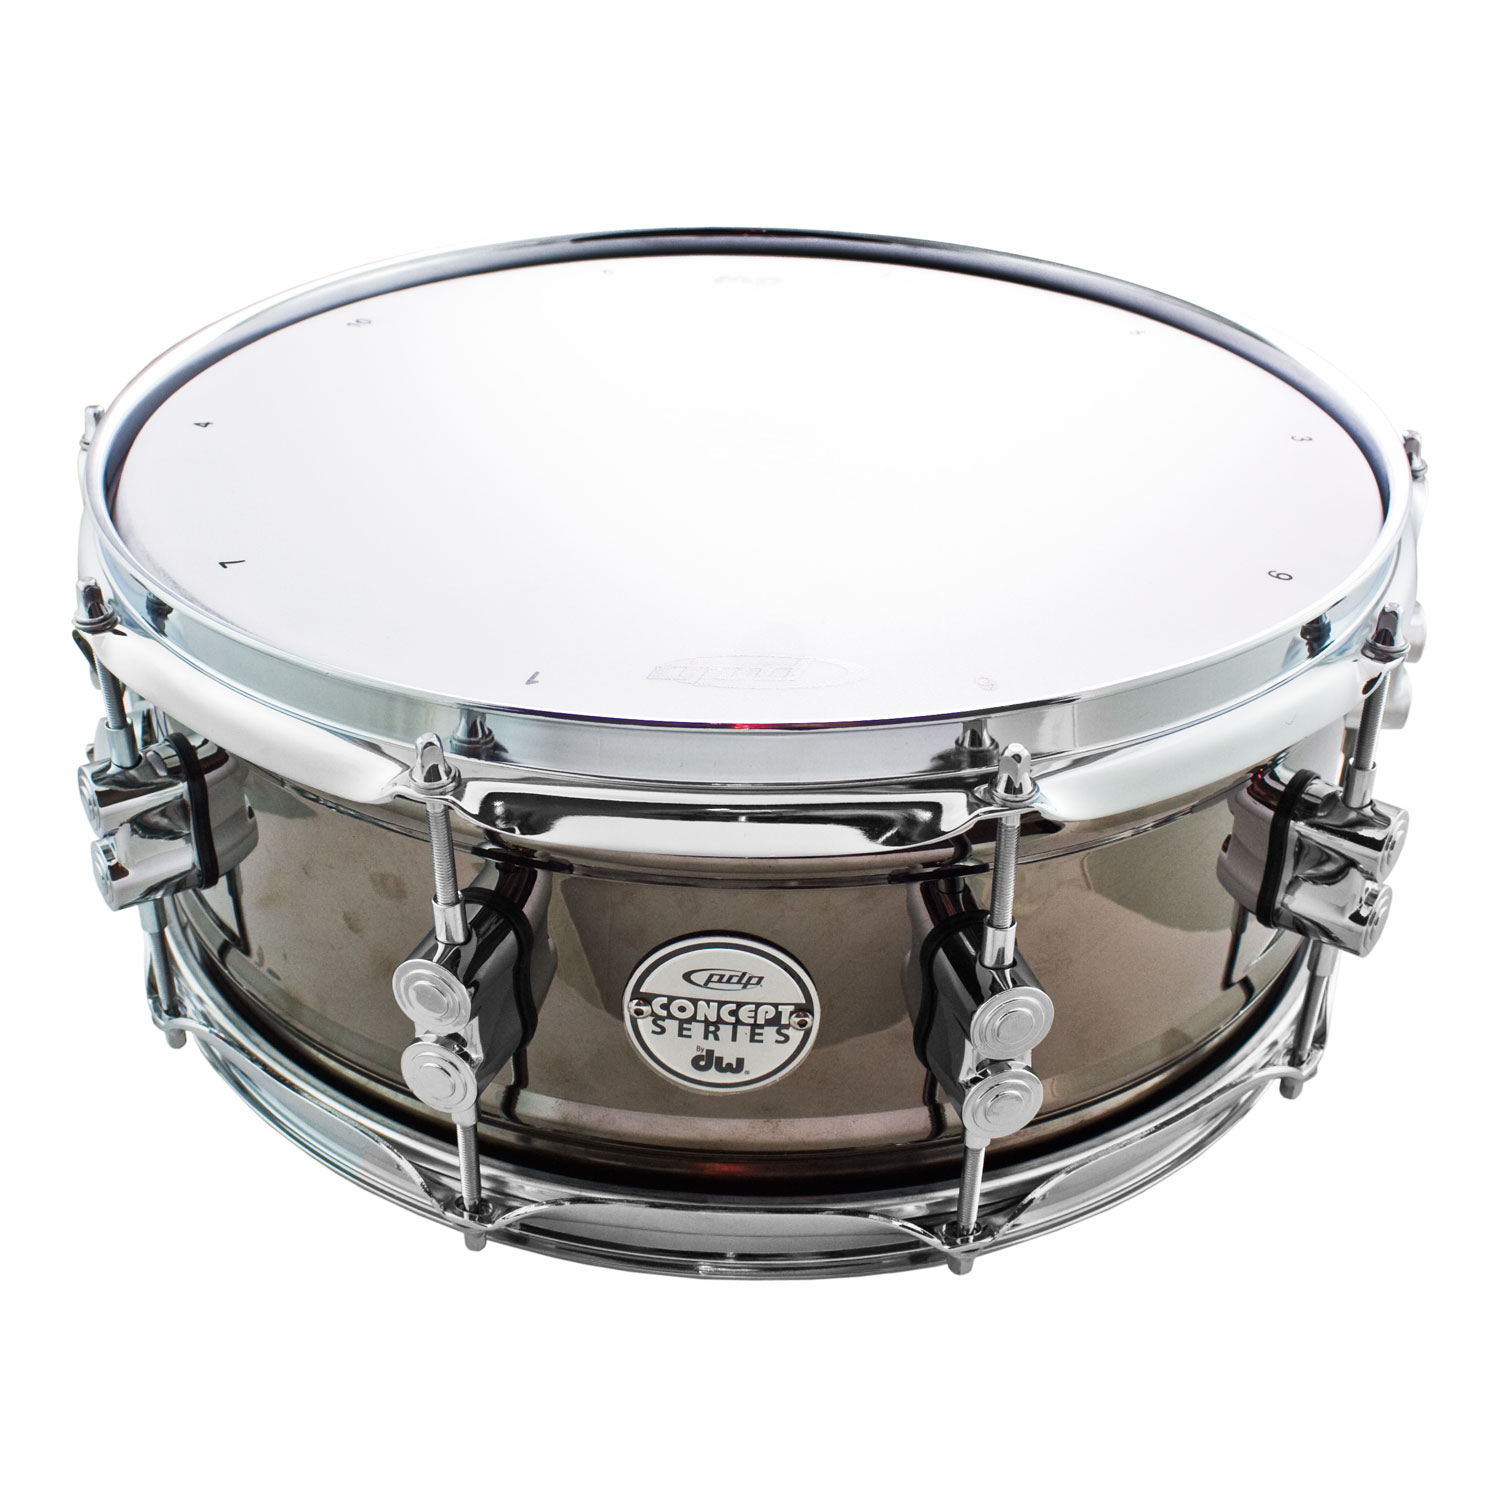 "DW 5.5"" x 14"" Concept Black Nickel Over Steel Snare Drum"